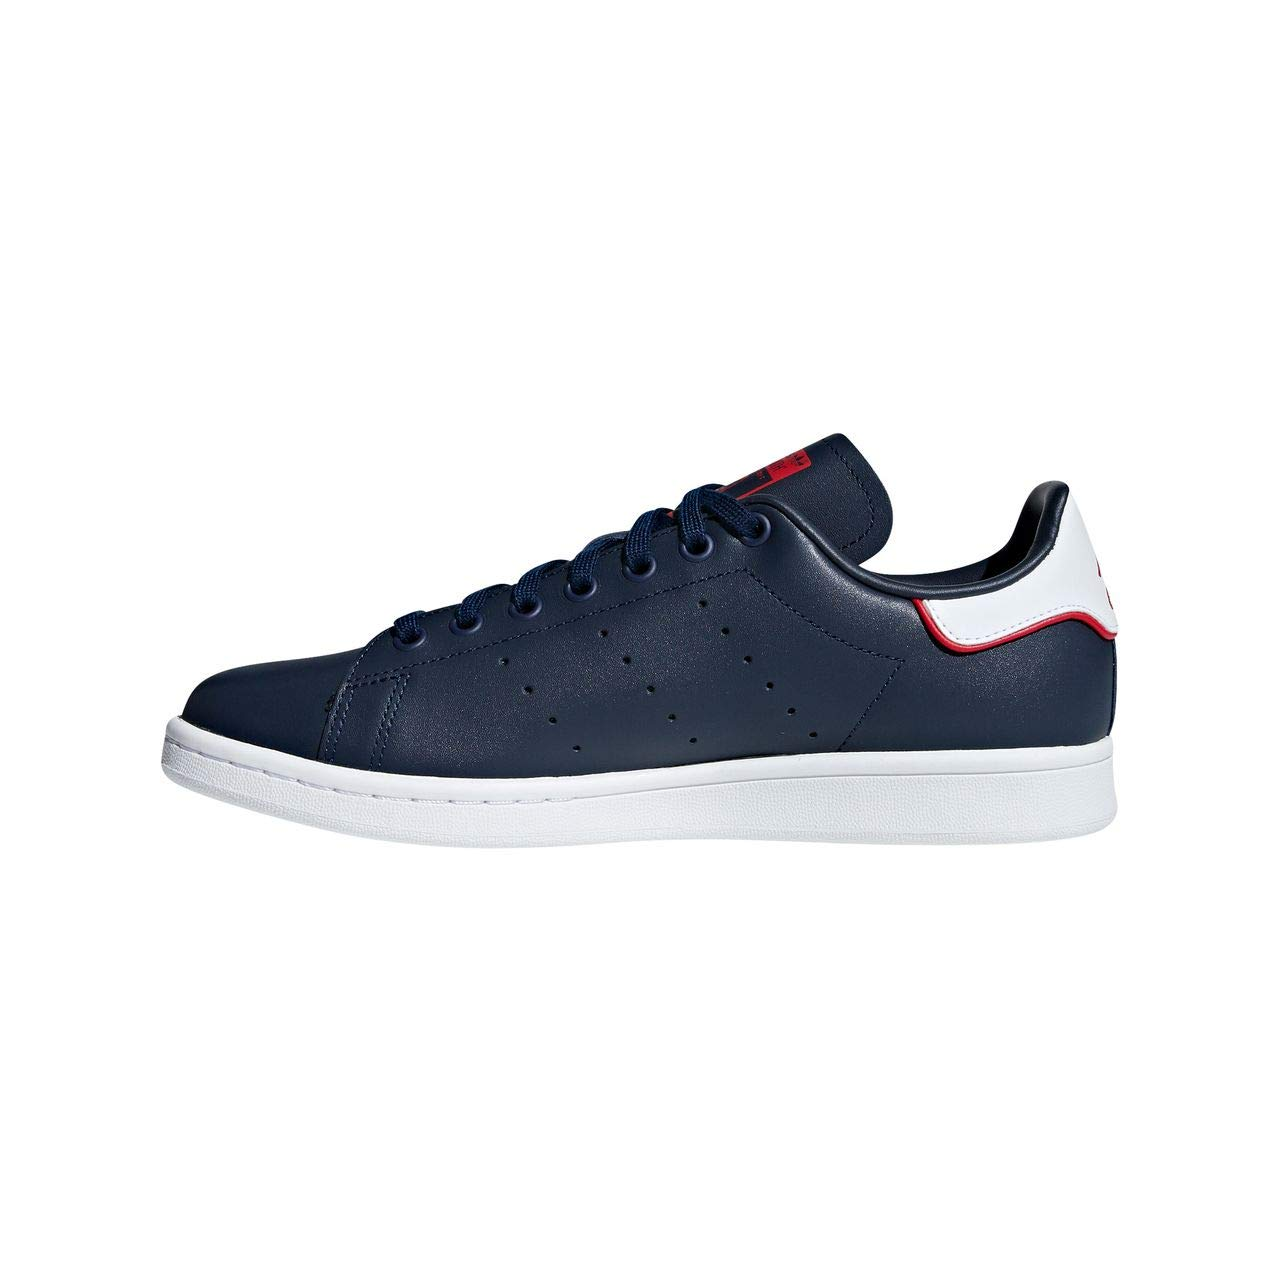 Stan Smith Conavy/Scarle Running Shoes